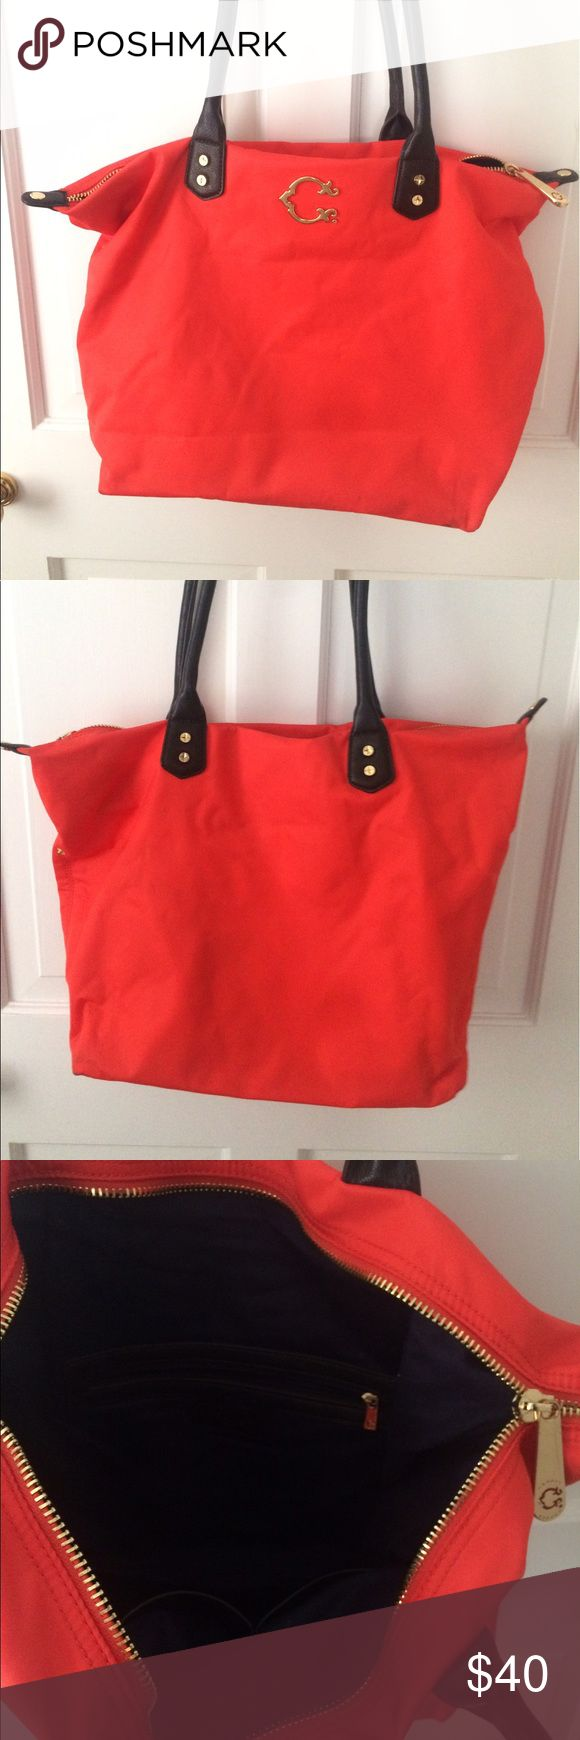 Cwonder orange bag Medium Size C Wonder over the shoulder purse. New never used c wonder Bags Shoulder Bags